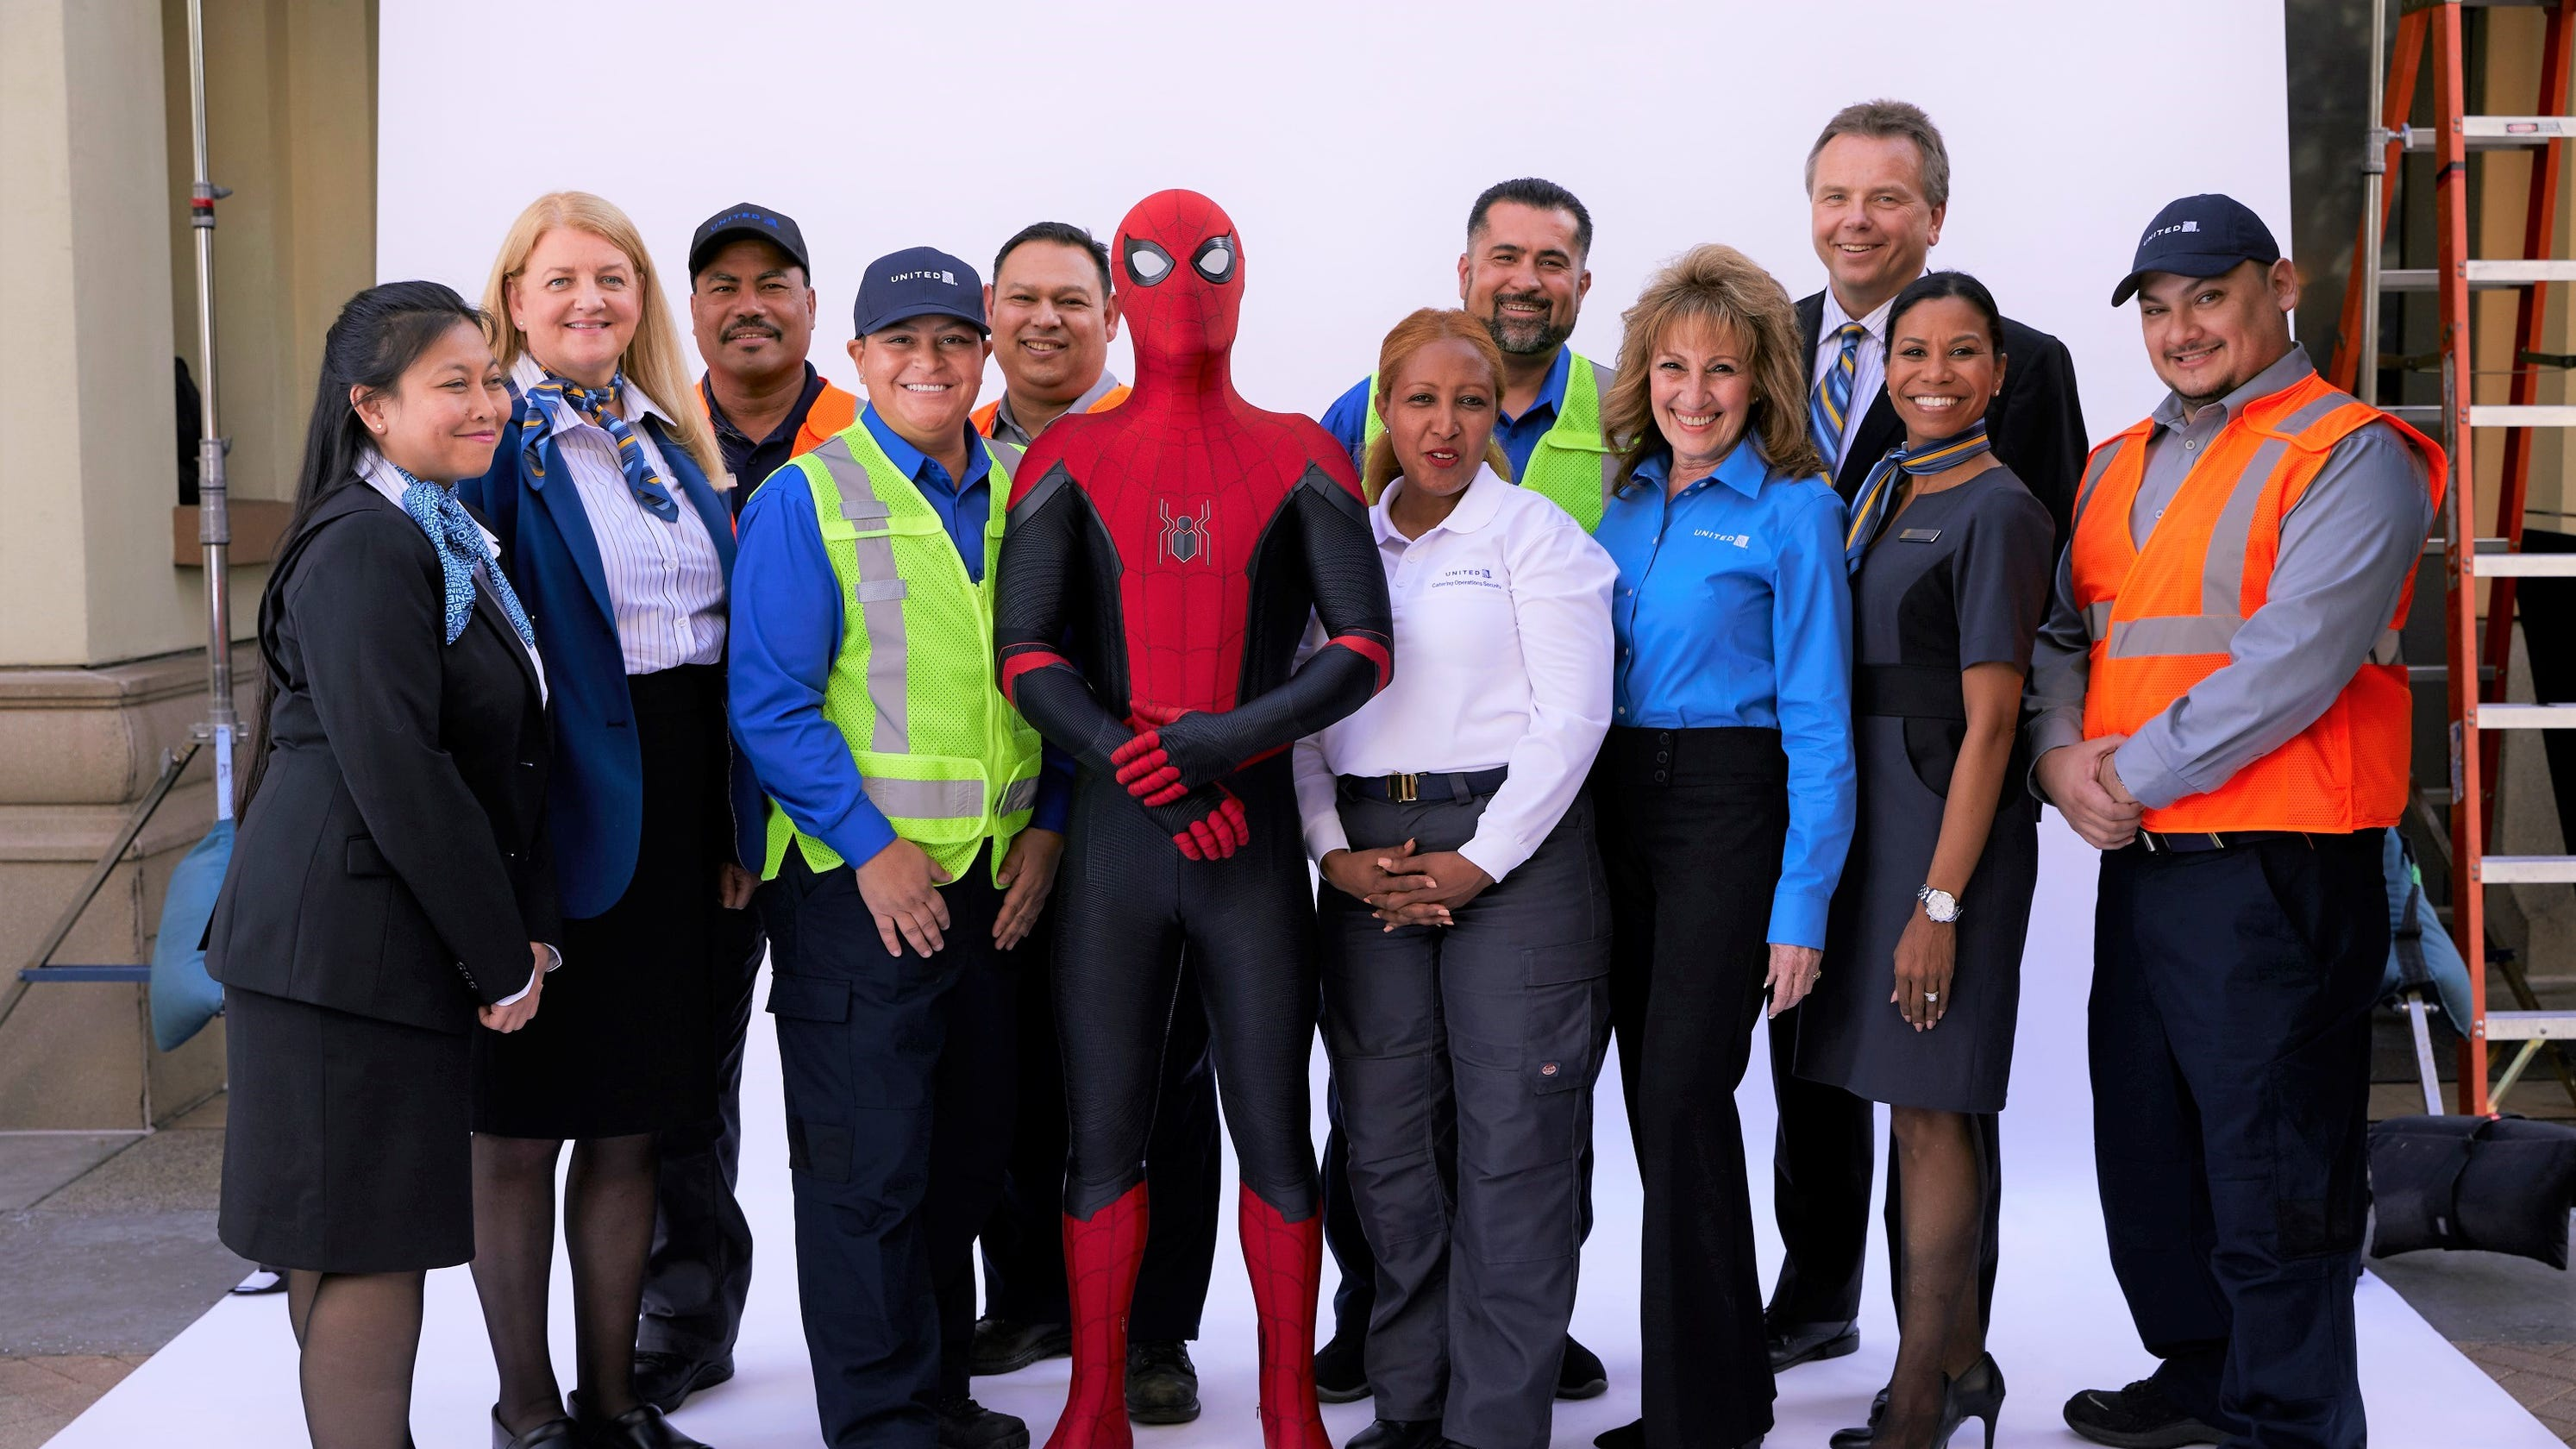 Spider-Man stars in United Airlines' new safety video